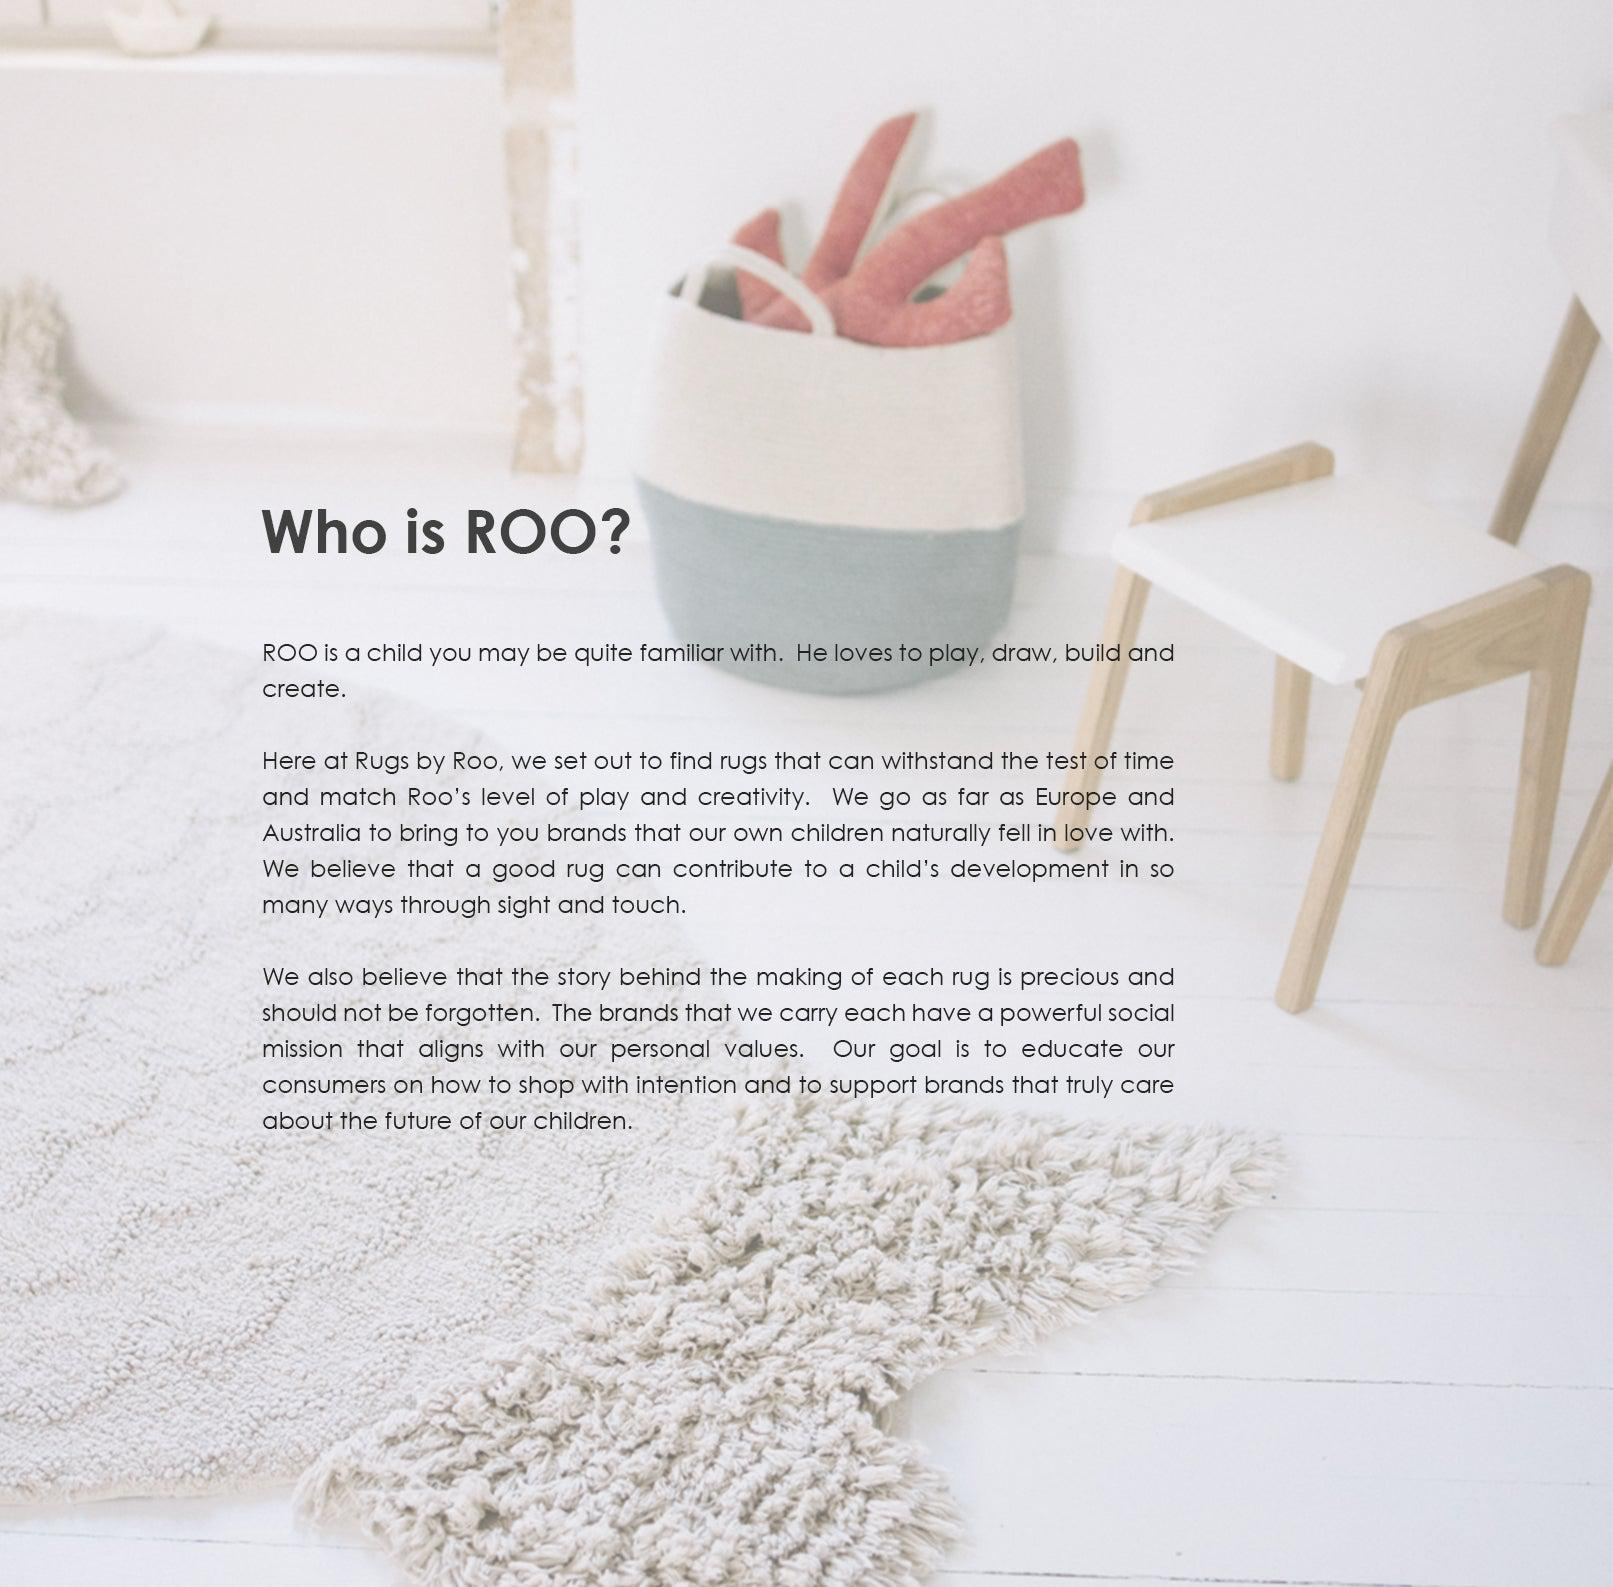 Who is Roo?  Roo is a child who is playful, imaginative and energetic.